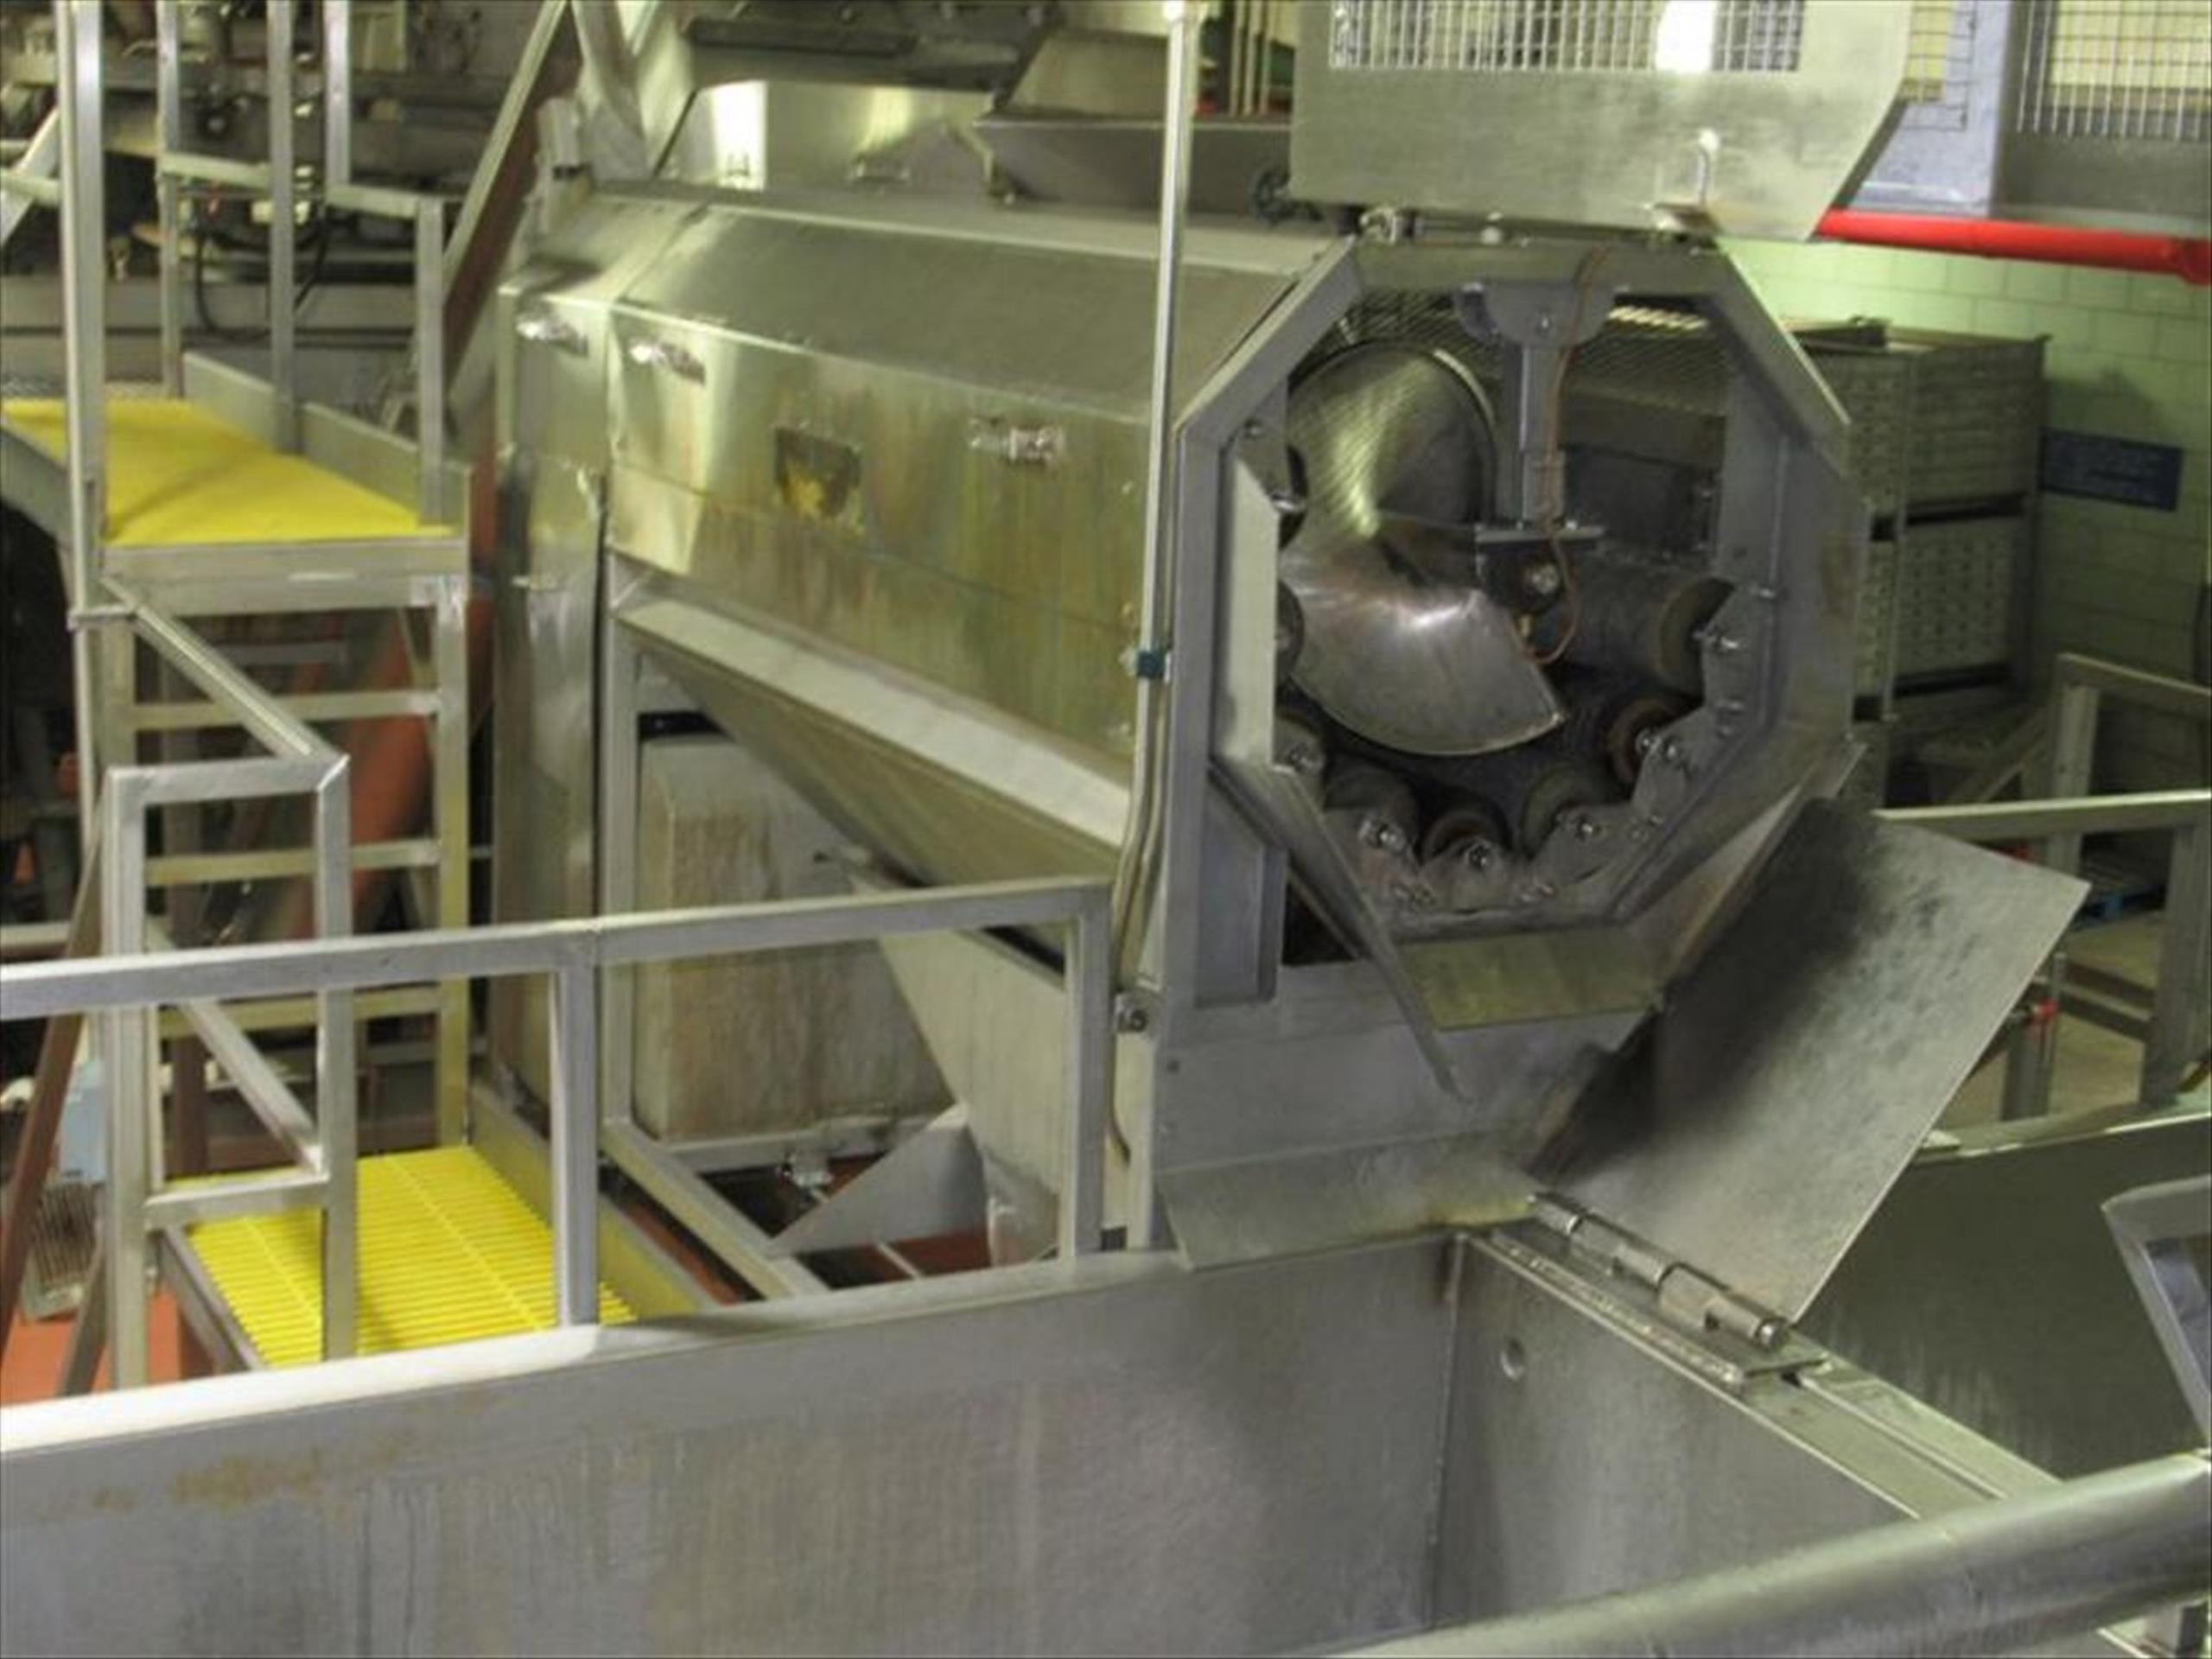 Abrasive peeler continuous washing feeling machine, 4 brush and 4 abrasive rollers, approx 4000 - Image 2 of 4